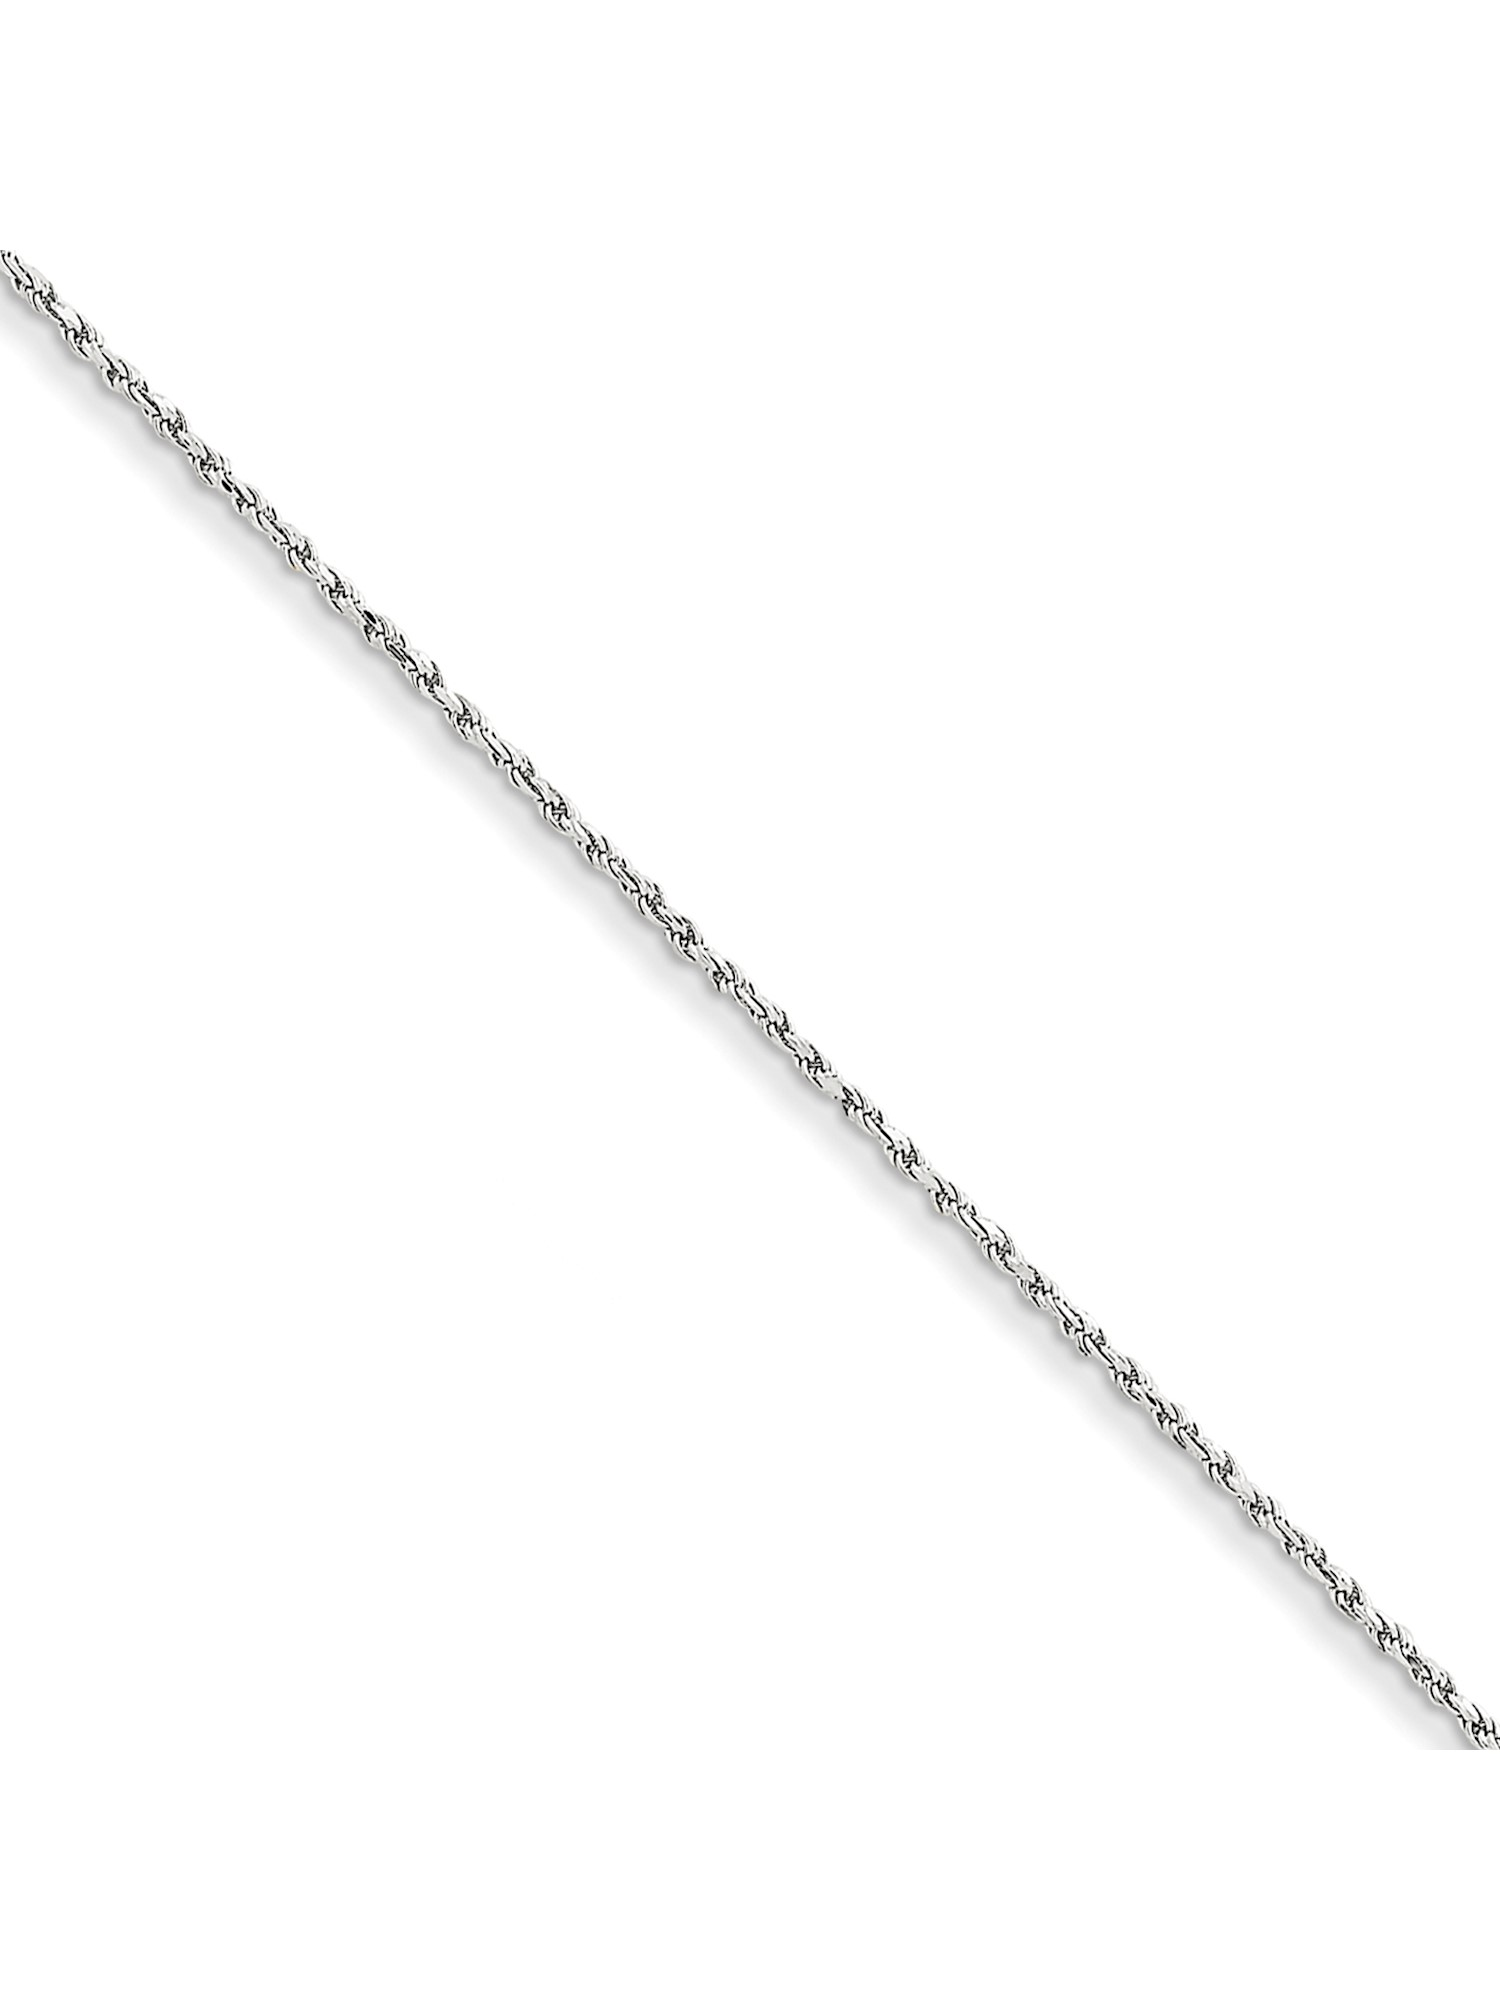 Solid 14k White Gold 1.30mm Machine made Rope Bracelet Fine Jewelry Ideal Gifts For Women